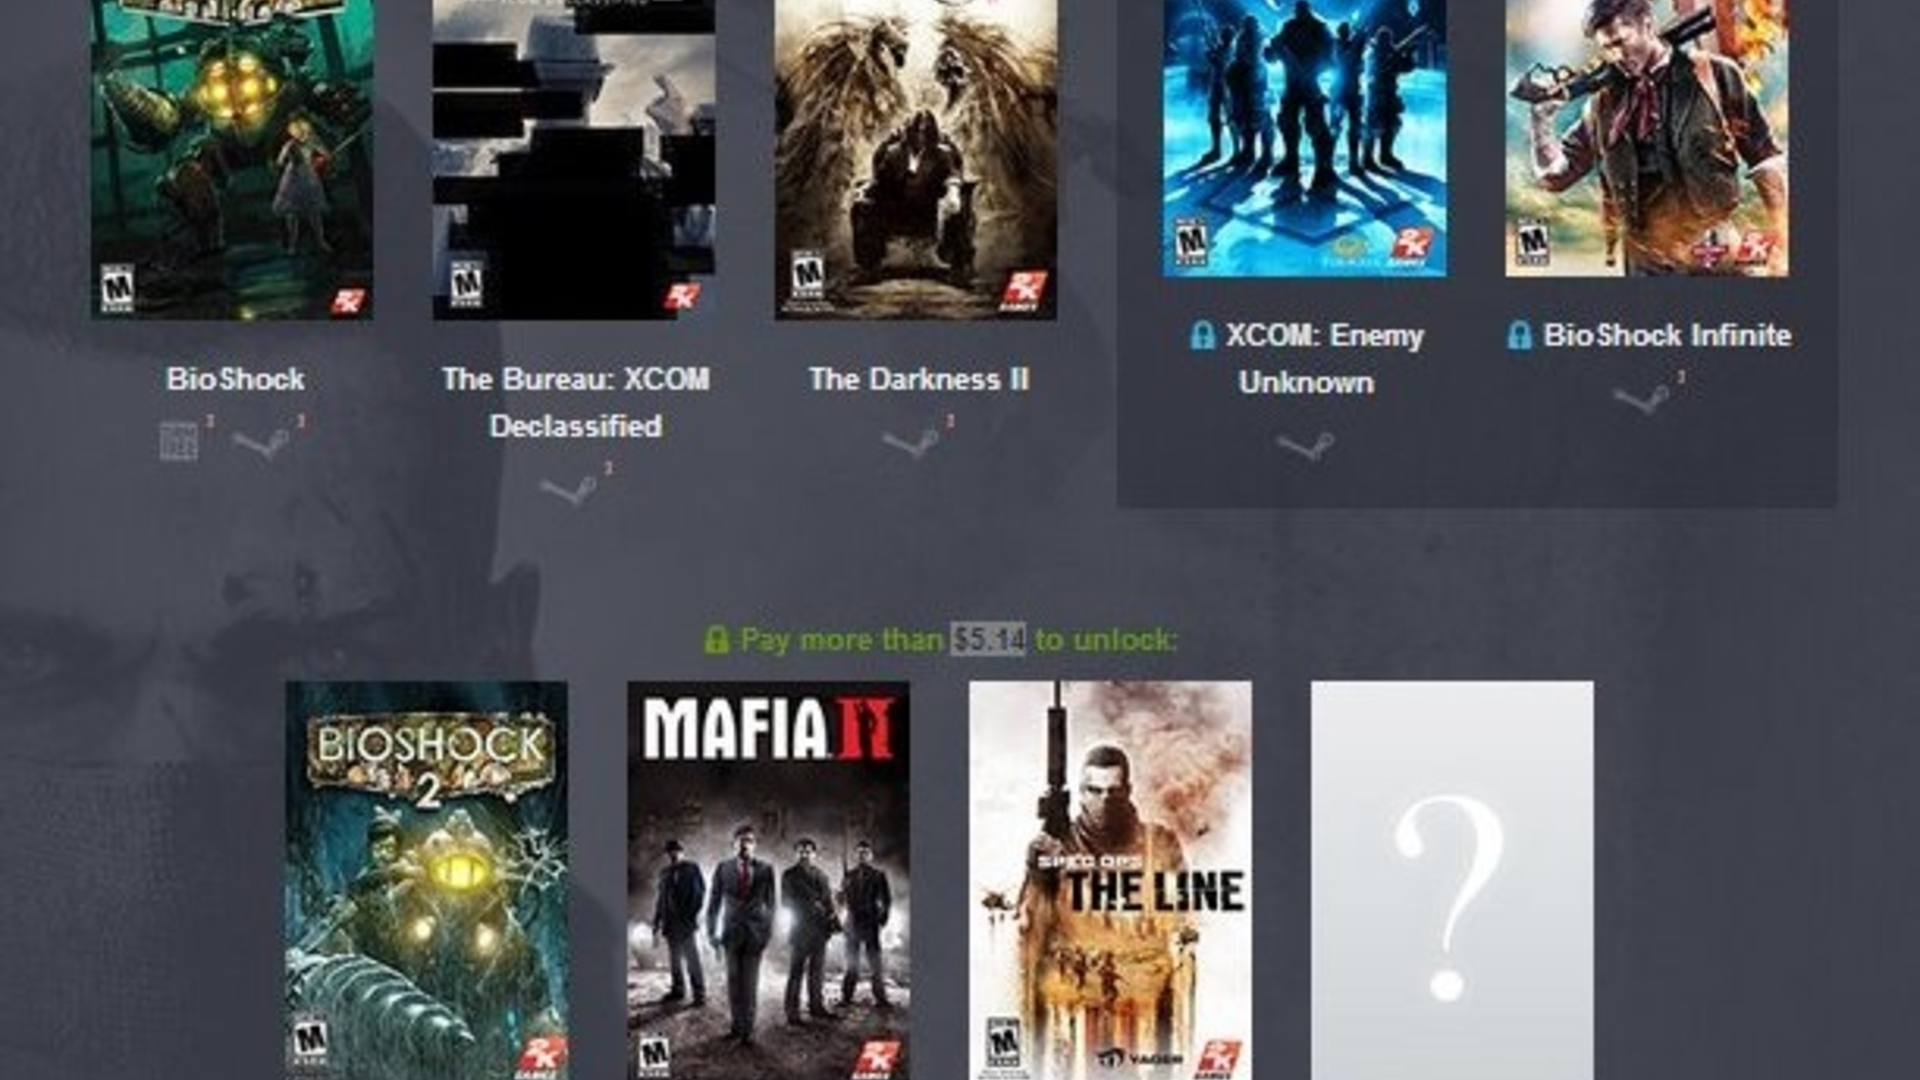 Pay what you want for The Bureau: XCOM Declassified, The Darkness 2 and BioShock